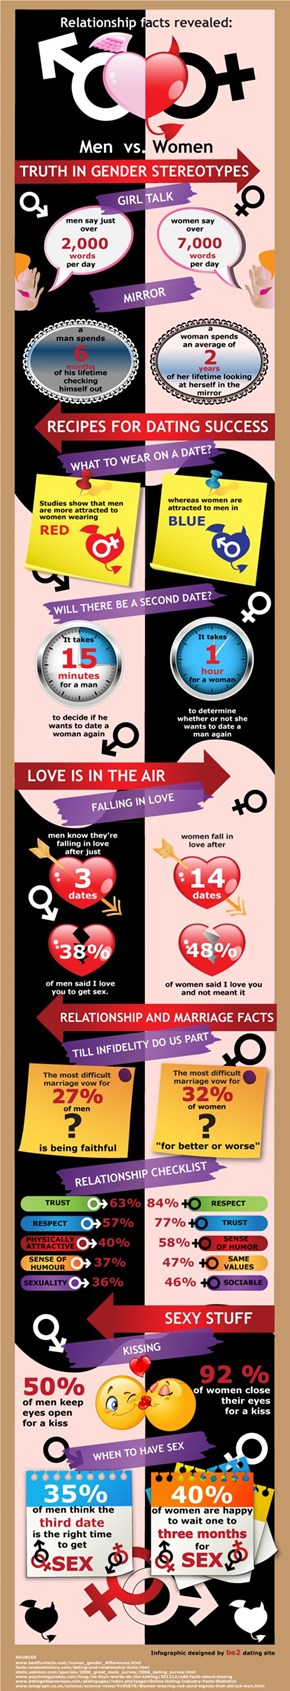 What Do You Think of These Dating Statistics?